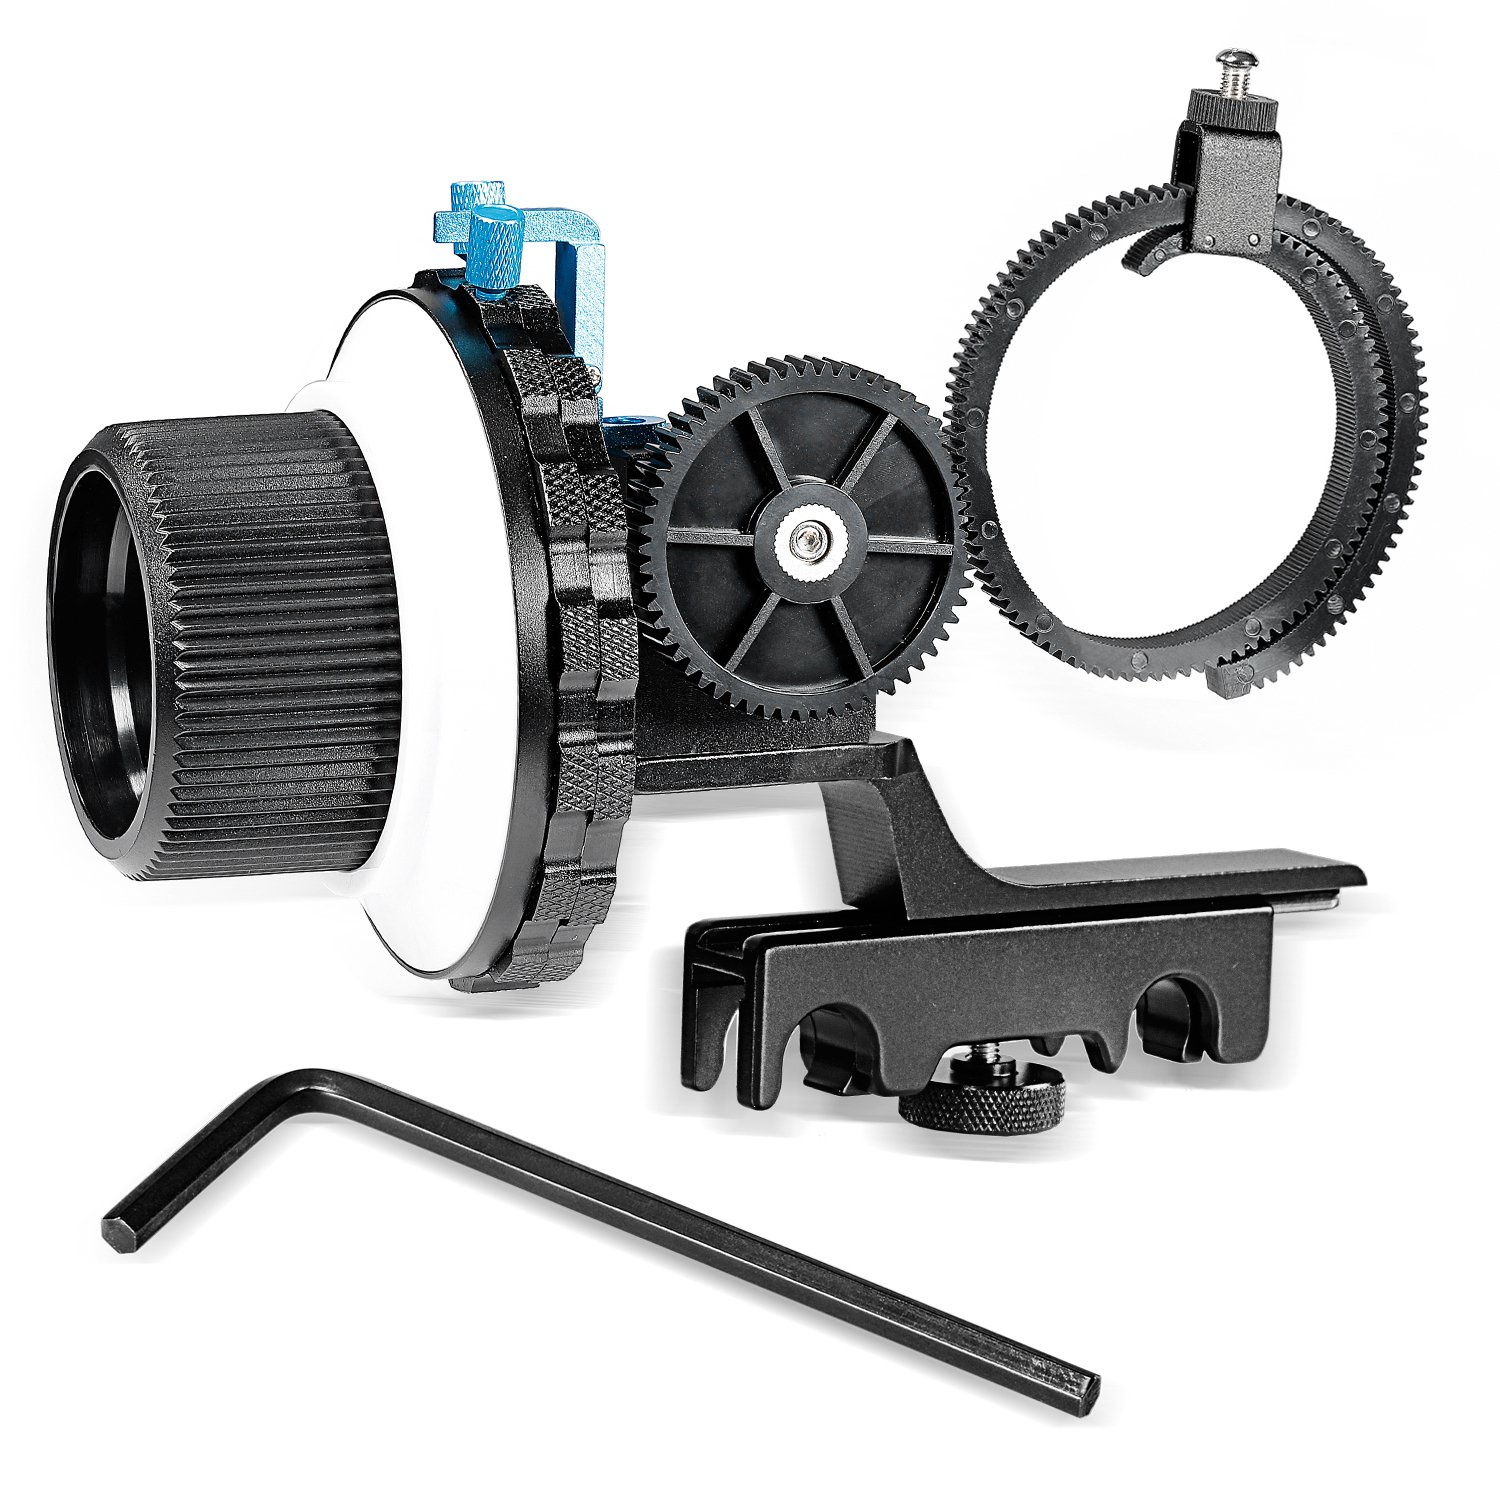 Neewer A-B Stop Follow Focus with Quick Release and Gear Ring Belt Mount for DSLR Cameras Camcorder,Fits Shoulder Supports,Stabilizers,Movie Rigs,All 15mm Rod Mounts by Neewer